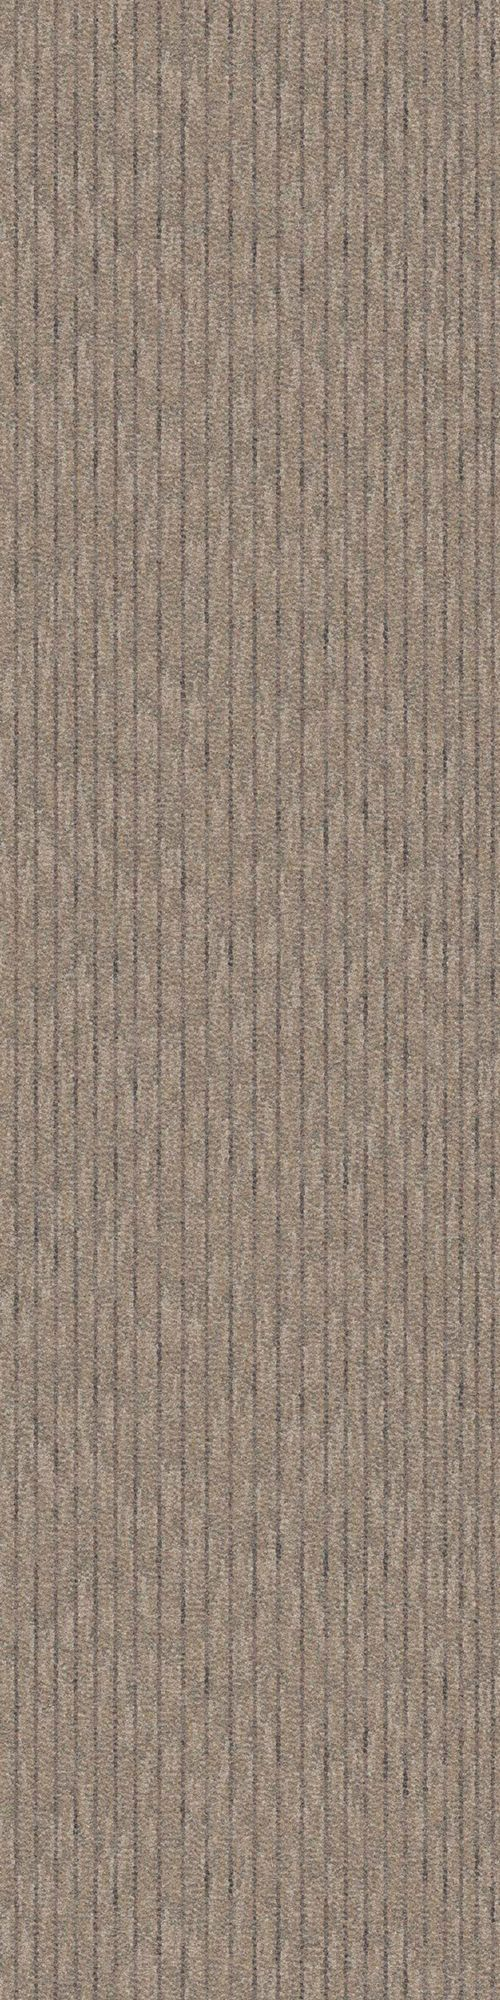 Interface carpet tile: B703 Color name: Sand Variant 7